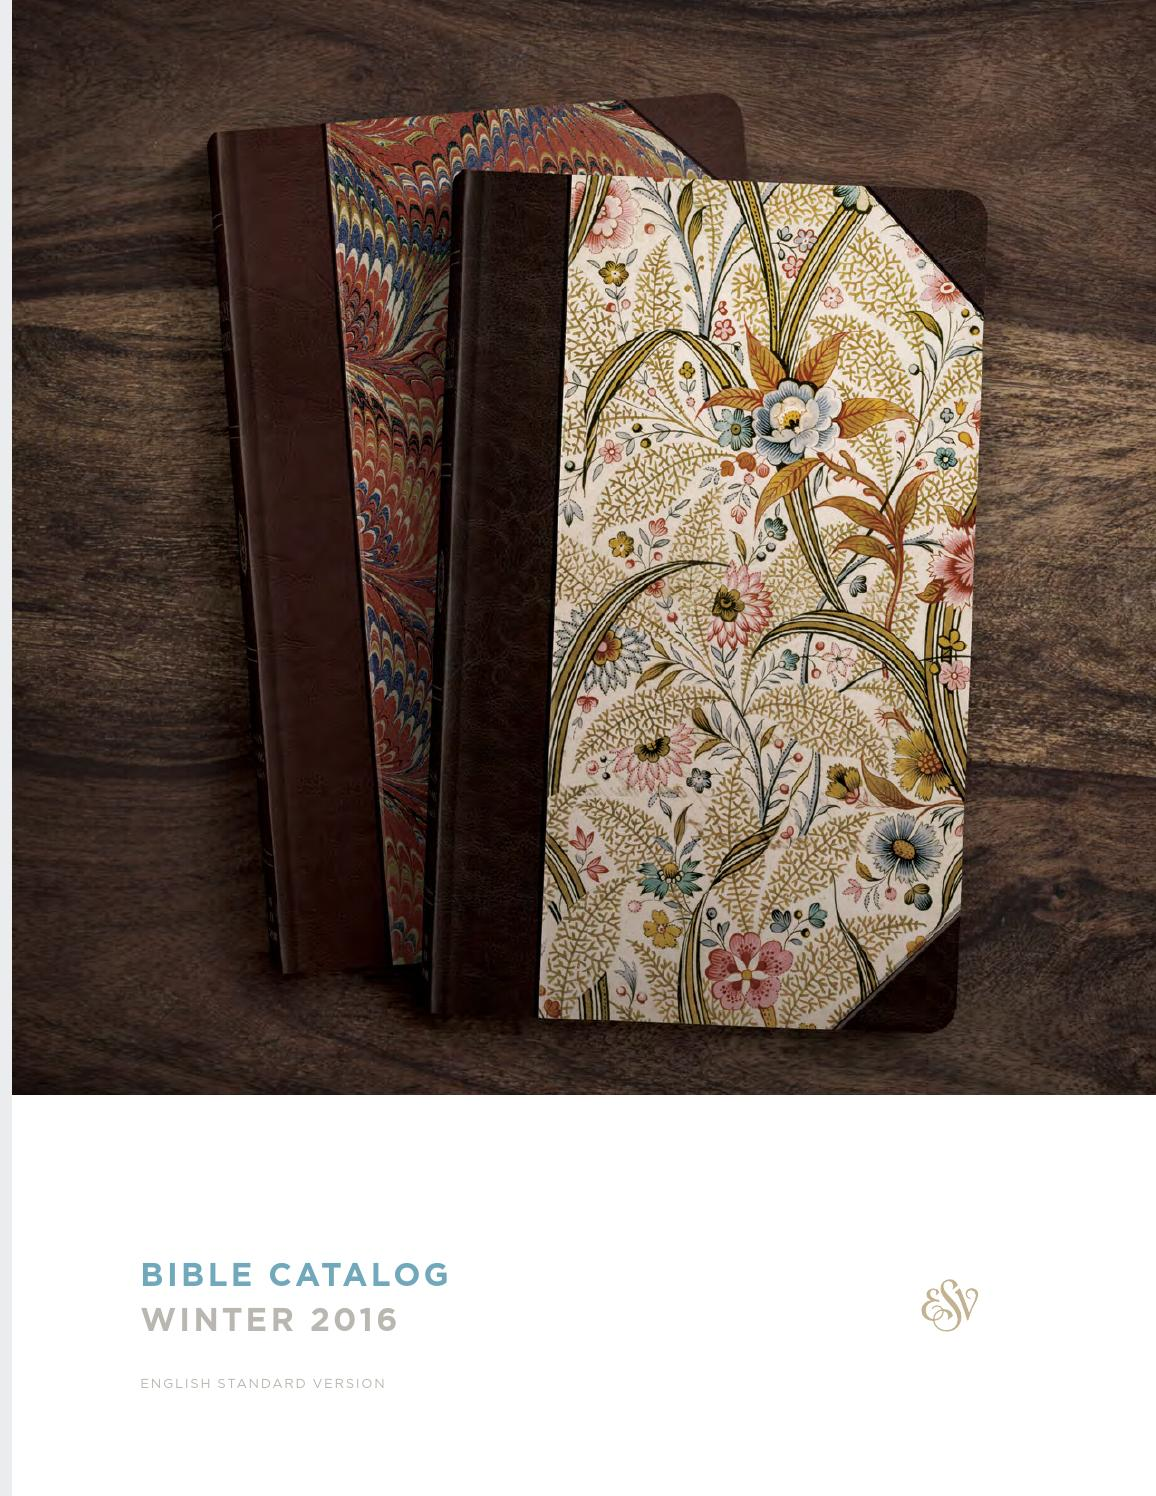 Esv winter 2016 bible catalog by crossway issuu for Garden design bible